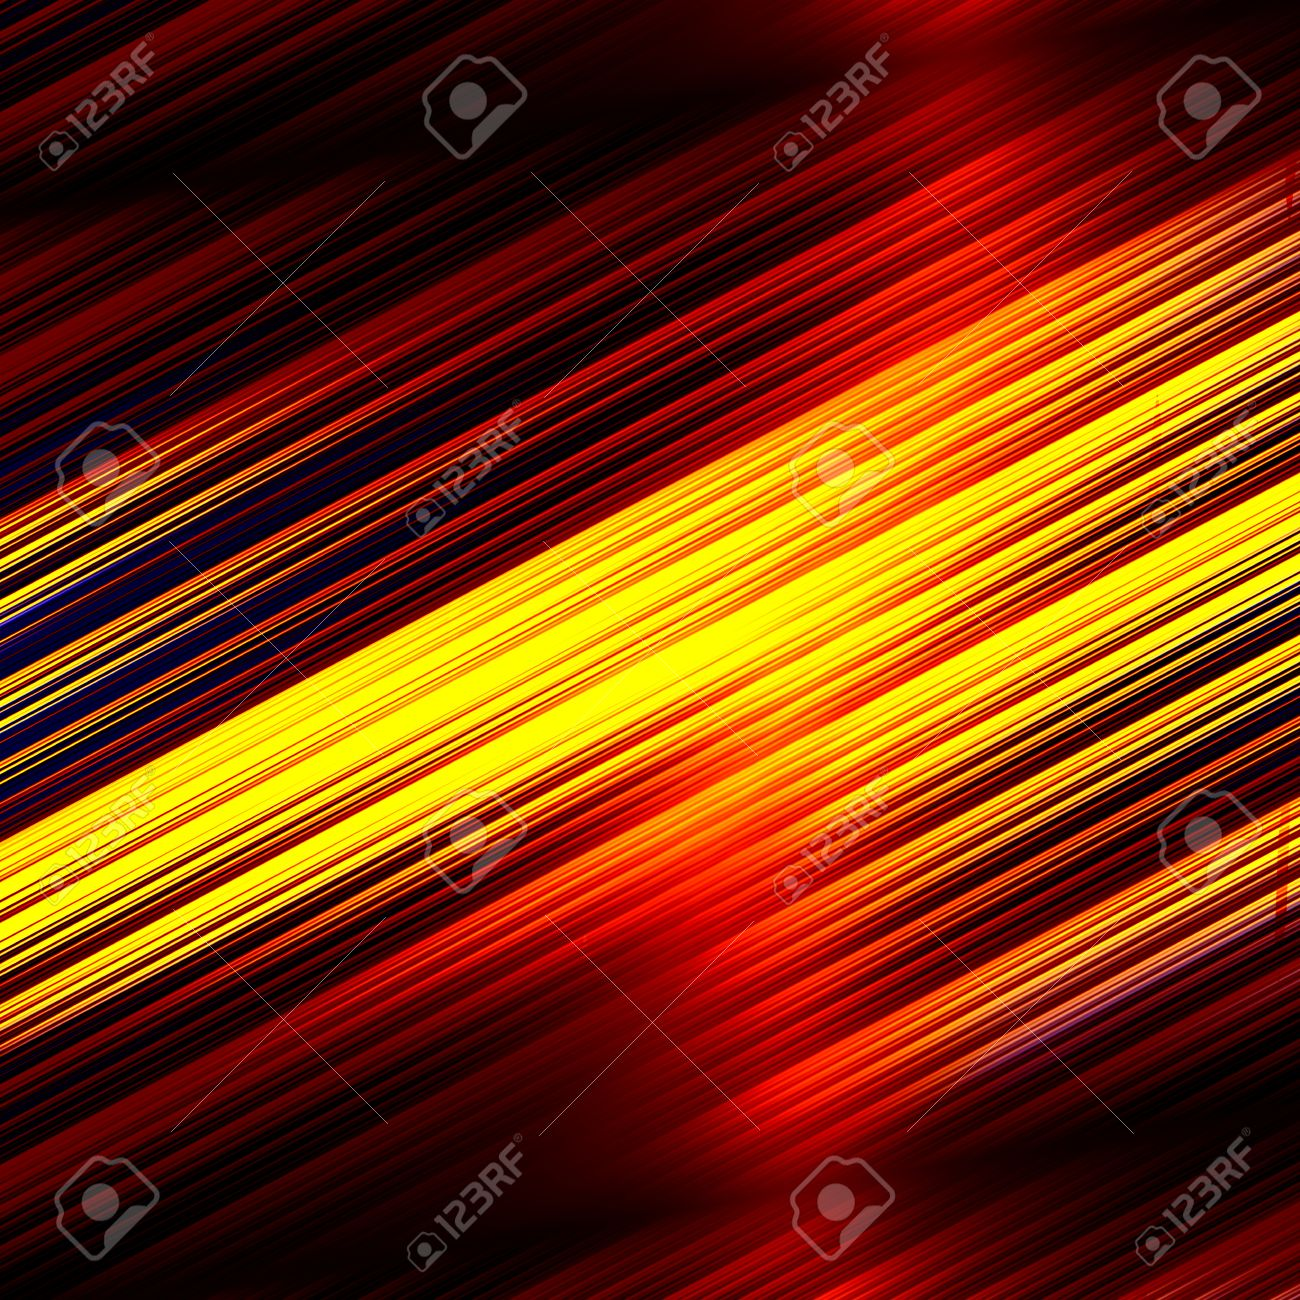 Abstract tablet background modern yellow orange black abstract tablet background modern yellow orange black illustration backdrop for smartphone mobile phone or computer screen creative digital art creative voltagebd Choice Image